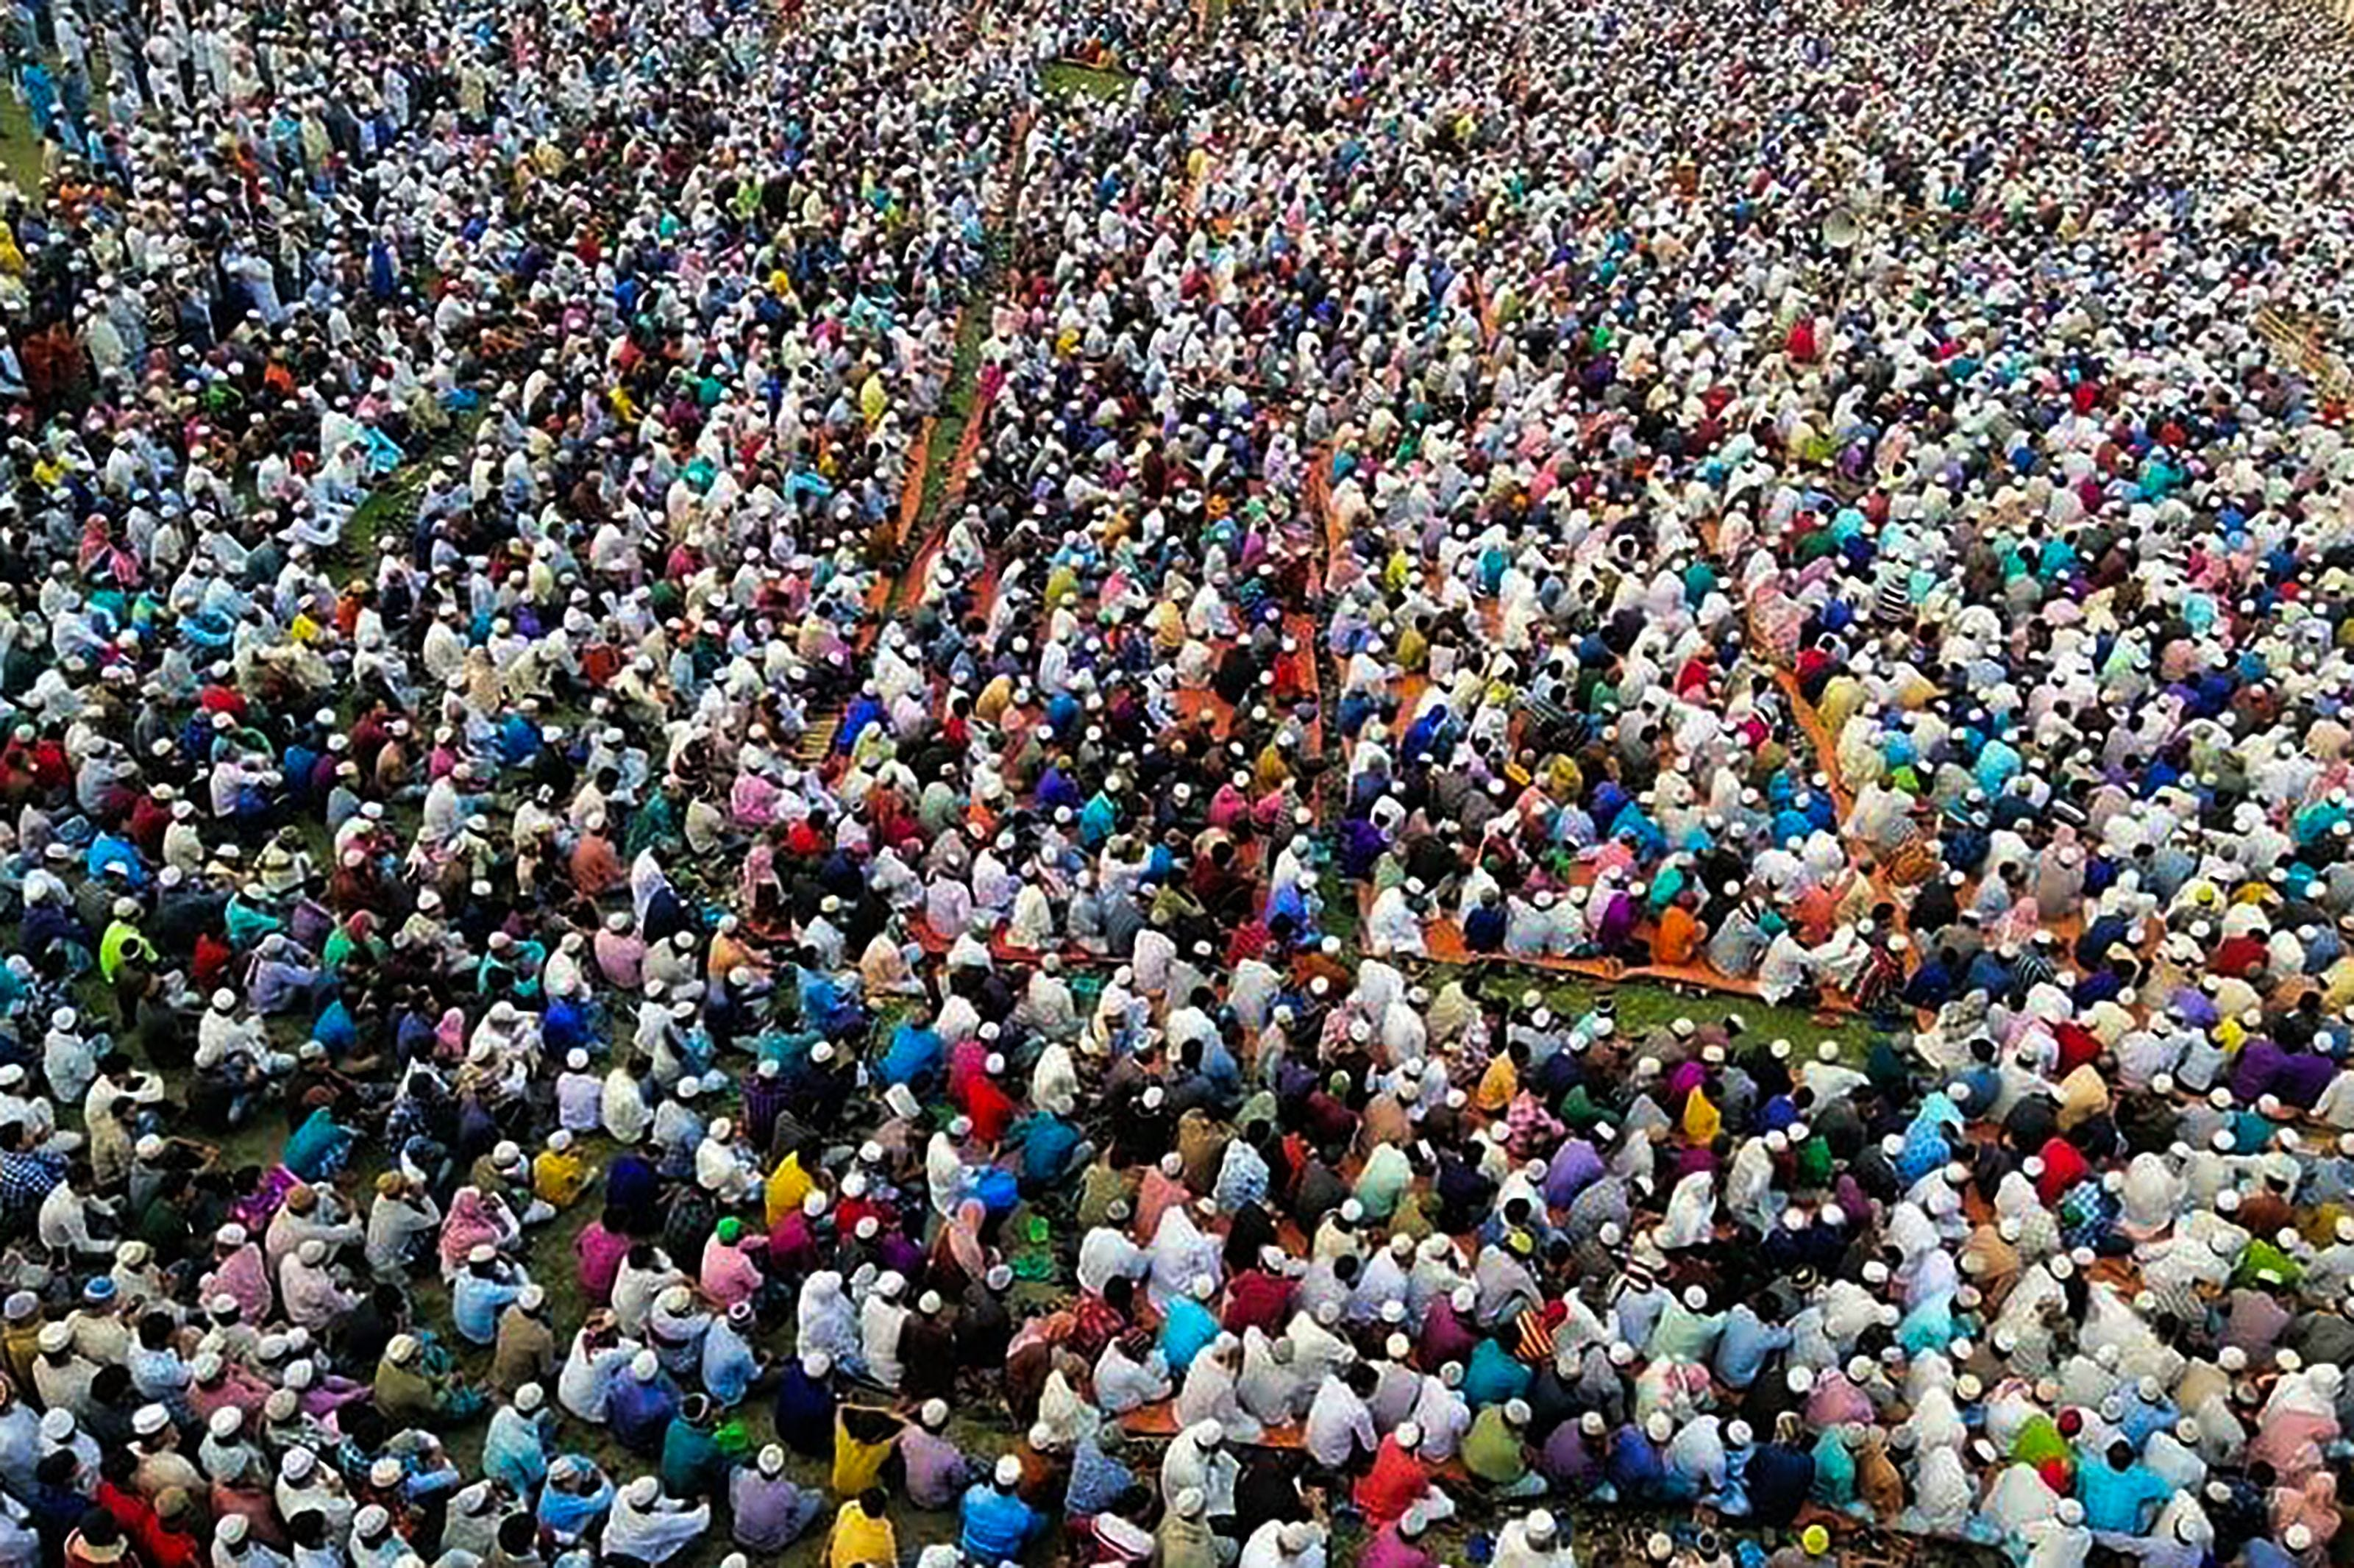 Slide 47 of 113: Thousands of Muslims attend a prayer session asking for safety amid concerns over the spread of the COVID-19 novel coronavirus, near Raipur in Lakshmipur district on March 18, 2020.Thousands of Muslims have joined a special prayer in a southern Bangladesh town seeking protection from the coronavirus to almighty, officials said on March 18 as the south Asian nation confirmed its first casualty by Covid-19.